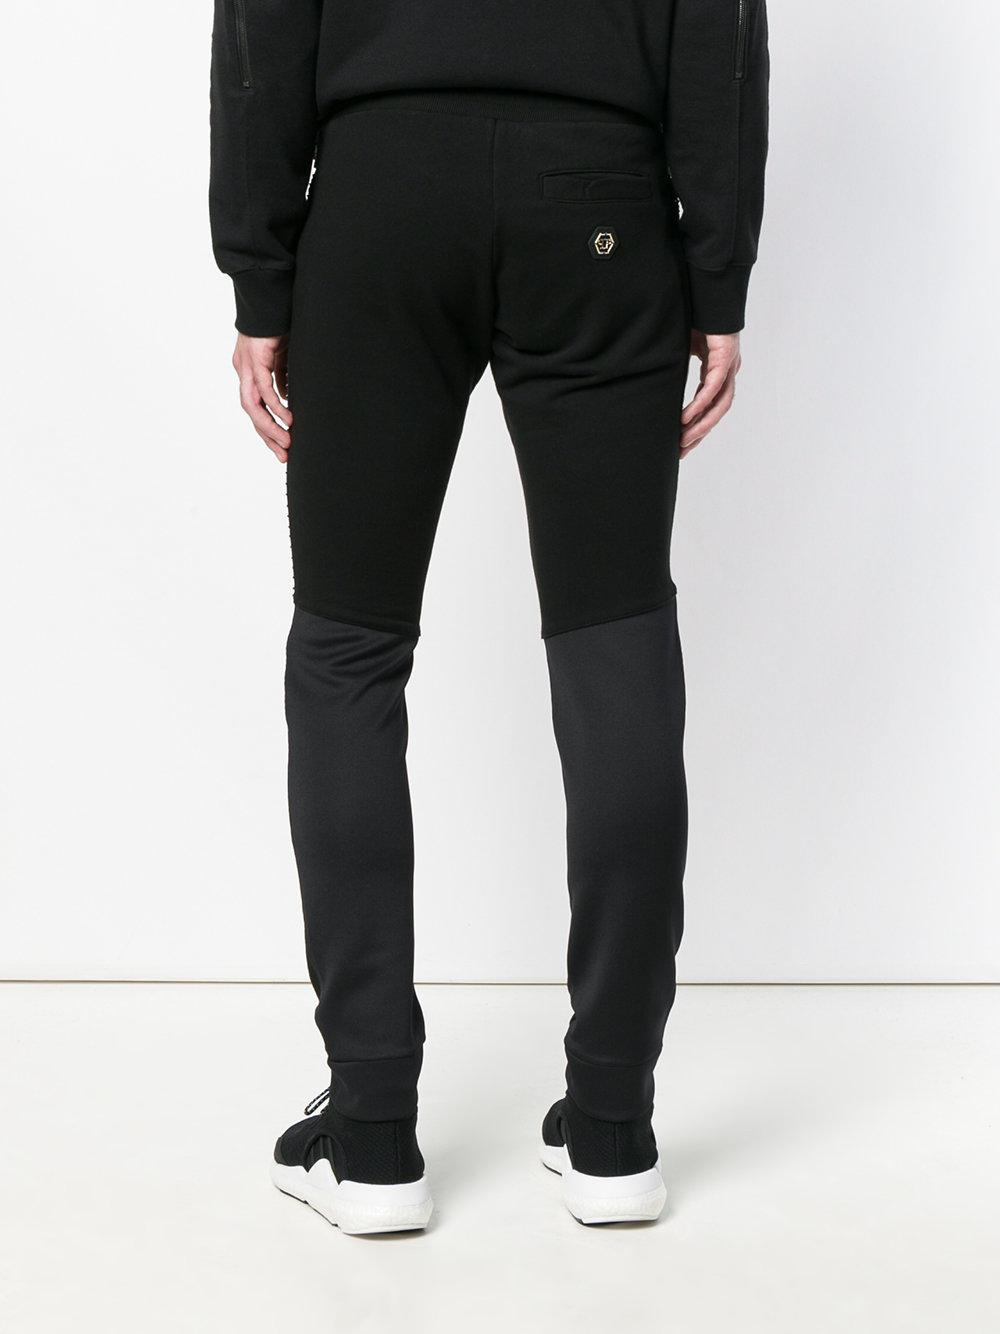 Philipp Plein Cotton Studded Track Pants in Black for Men